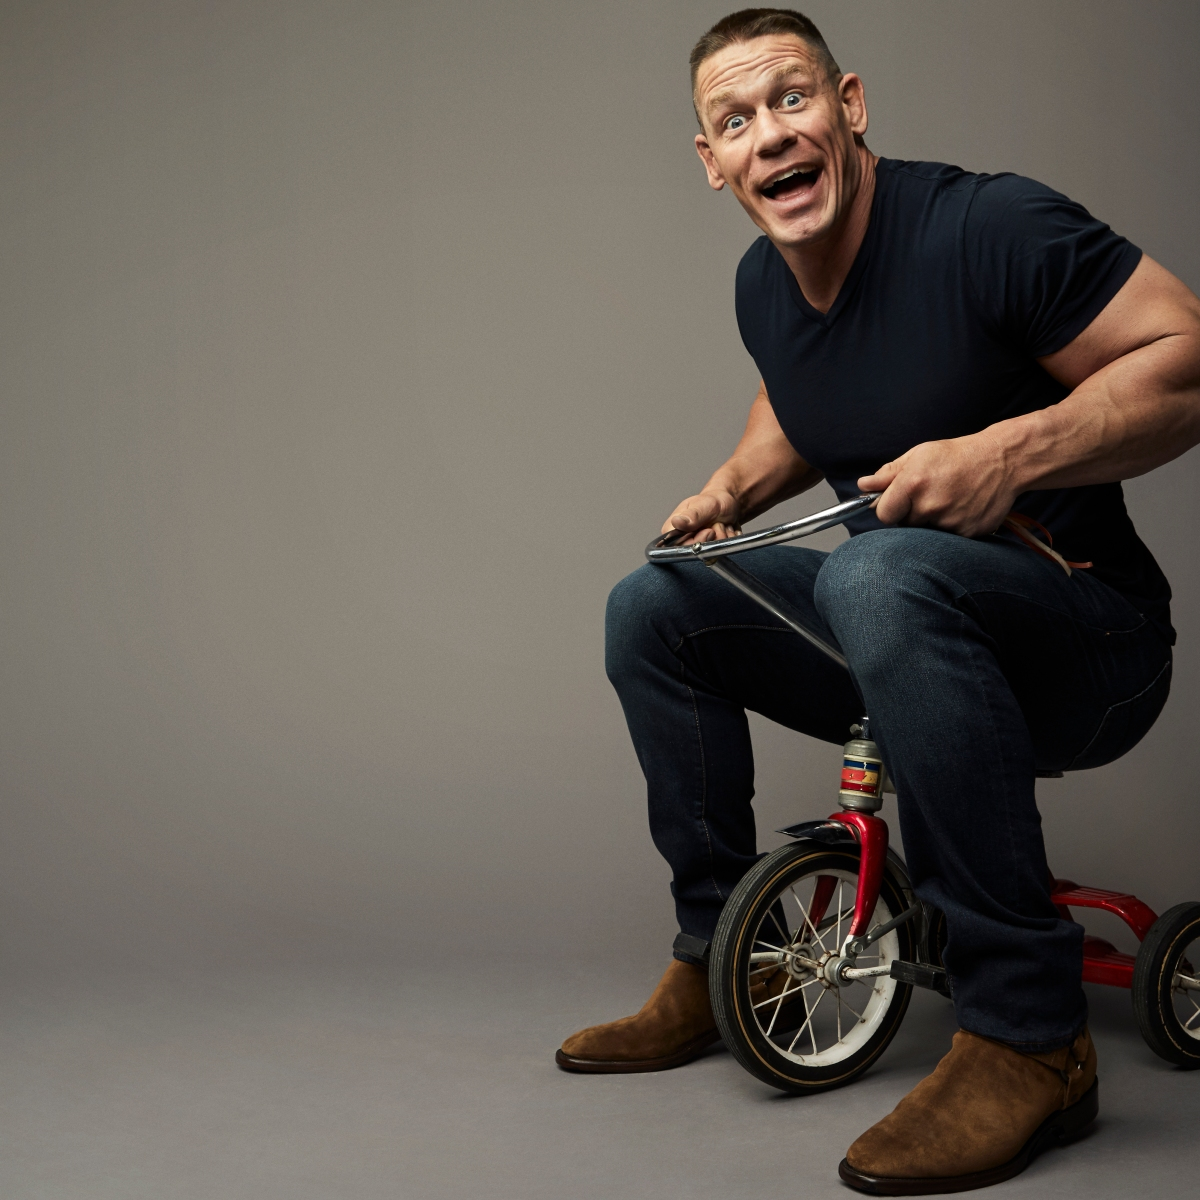 Breaking Big: How John Cena Became a Hollywood Megastar